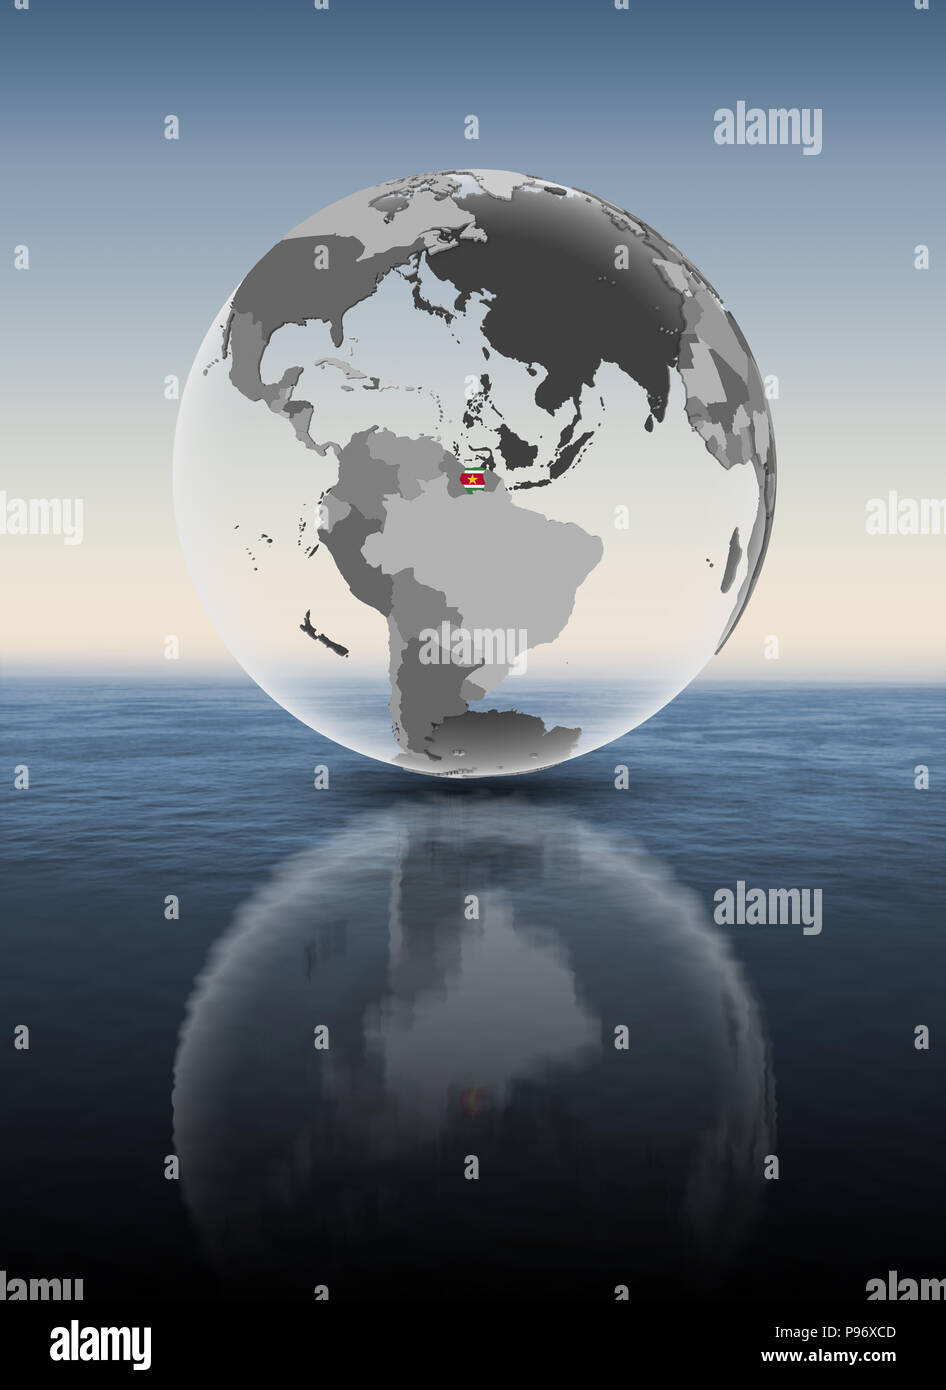 Suriname with flag on translucent globe above water. 3D illustration. - Stock Image